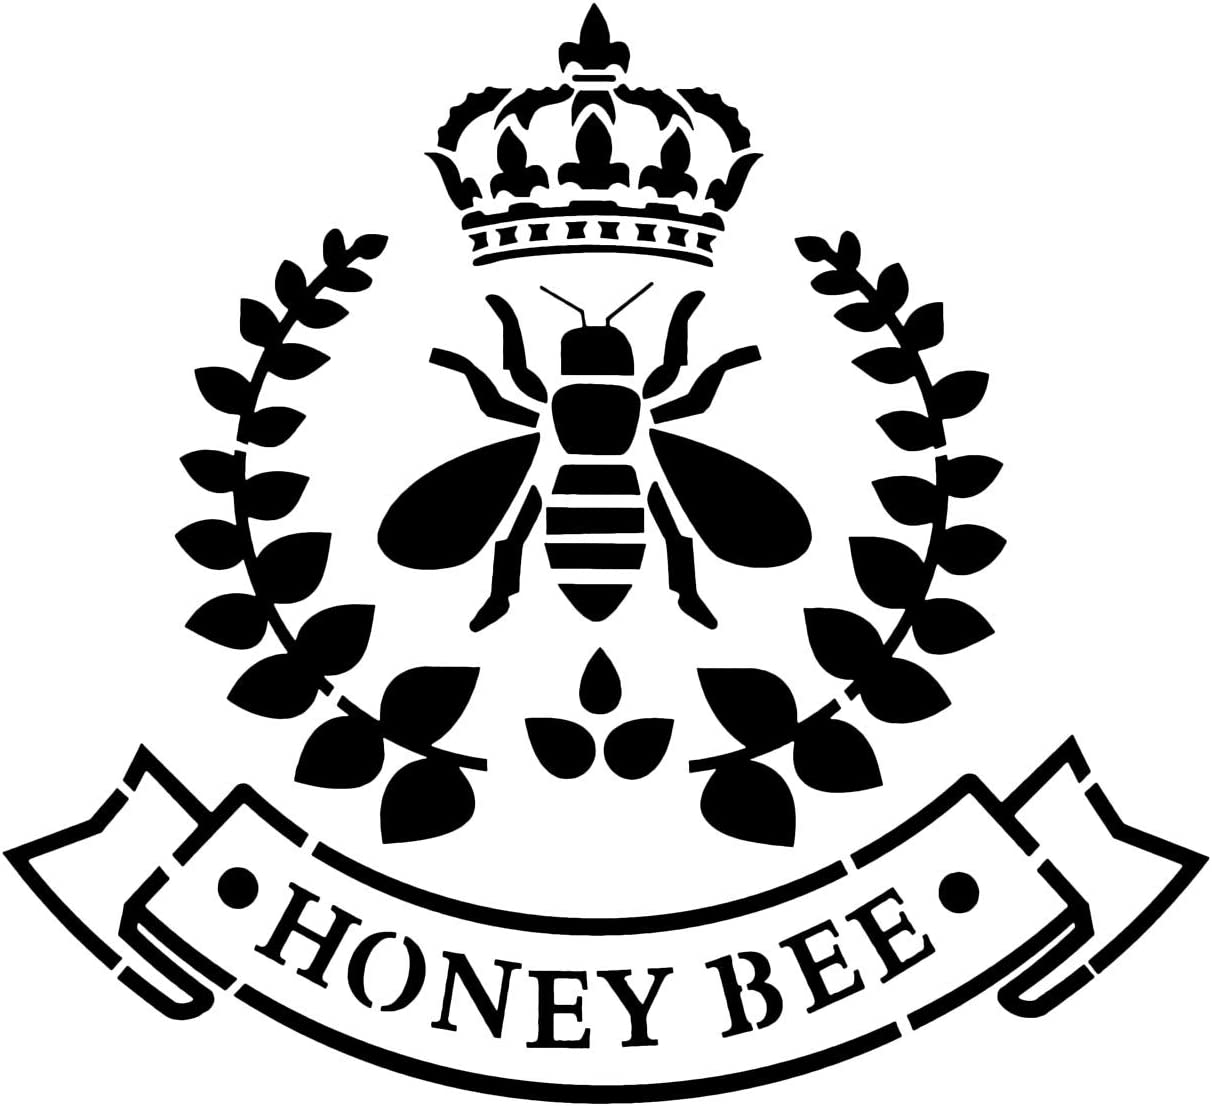 Laurel Wreath Crown Honey Bee,Reusable Plastic Stencil Template for Painting on Wood and Walls Furniture Crafts BUSOHA French Bee Stencil